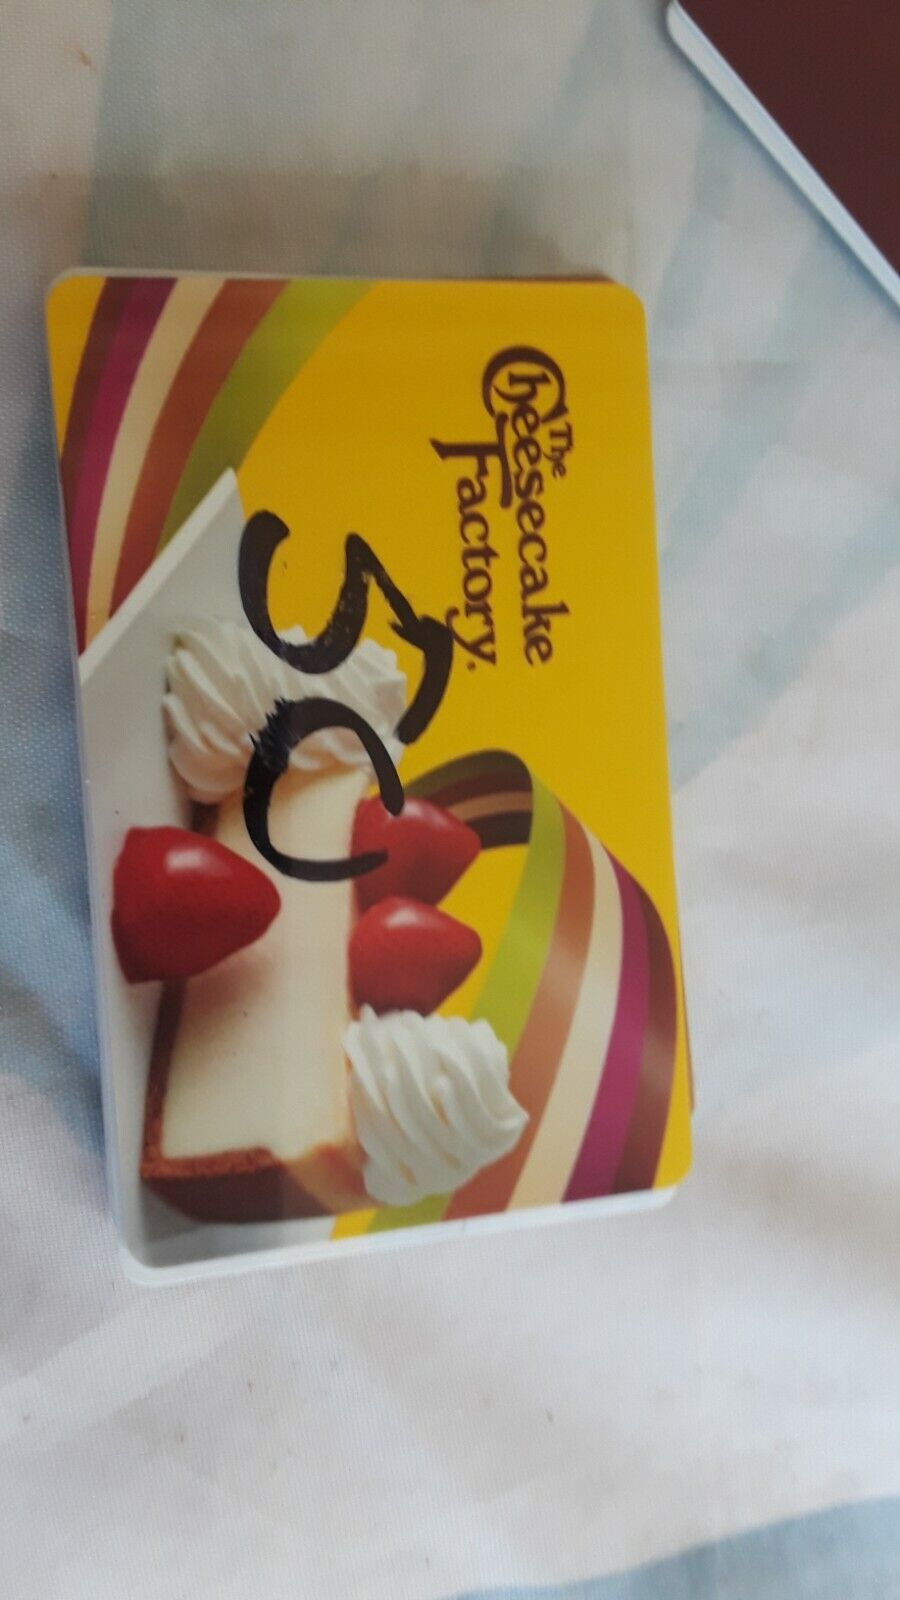 50 Cheesecake Factory Gift Card FREE SHIPPING - $48.98